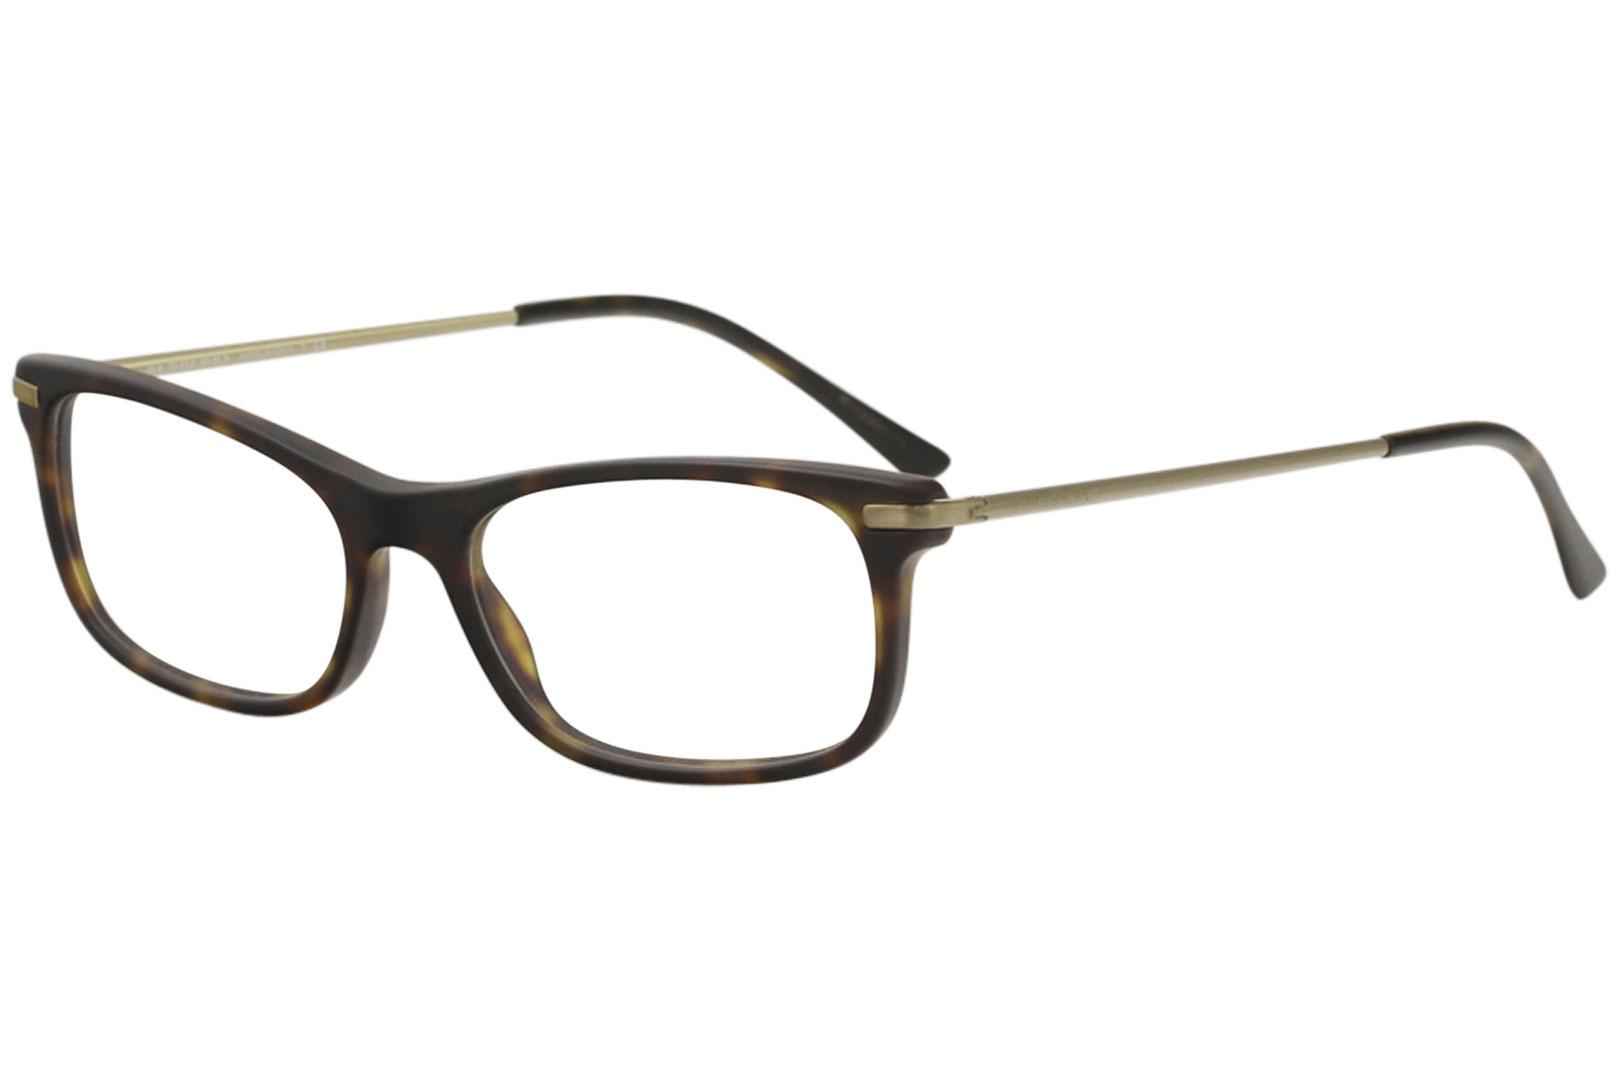 8e31e74a3b05 Burberry Men s Eyeglasses BE2195 BE 2195 Full Rim Optical Frame